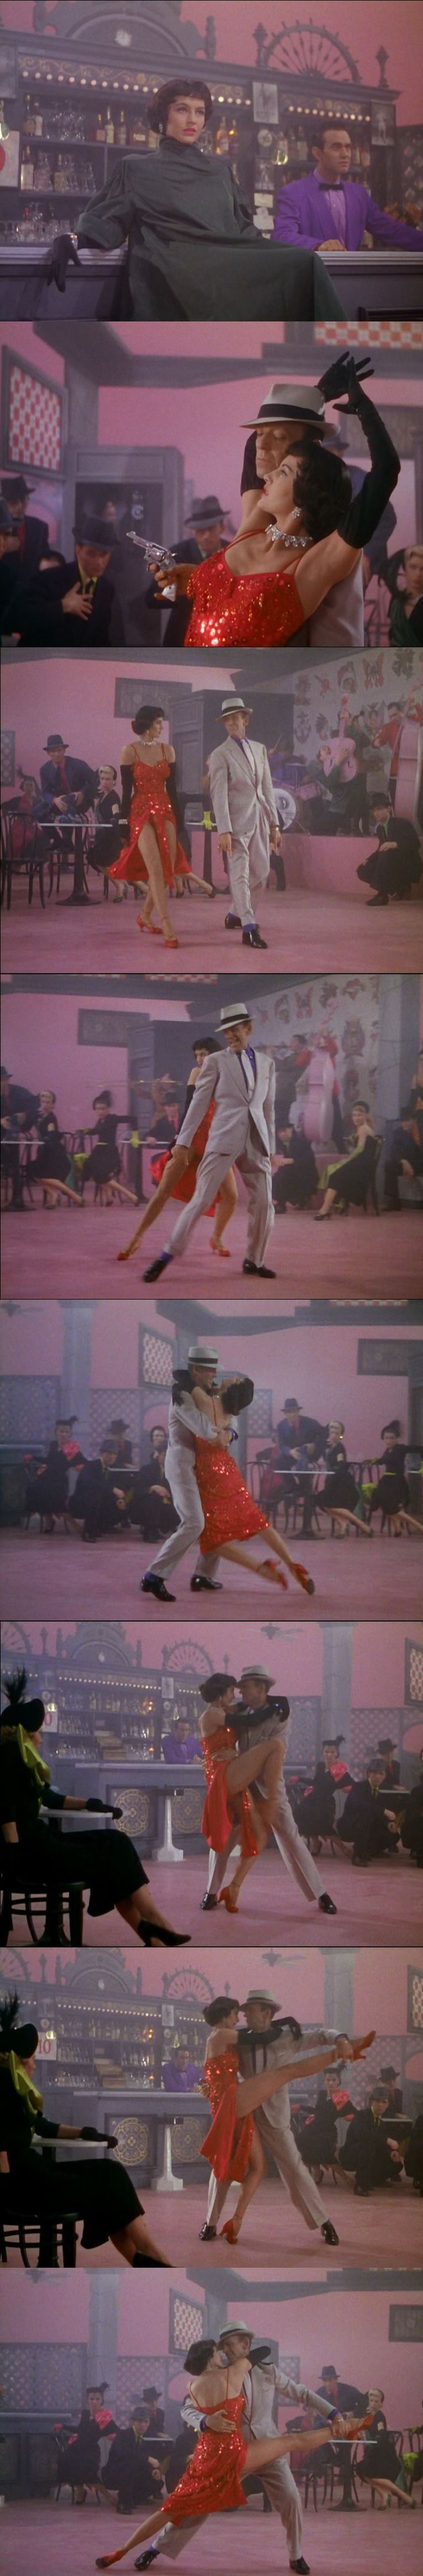 "Cyd Charisse and Fred Astaire in ""The Band Wagon"" [1953]"